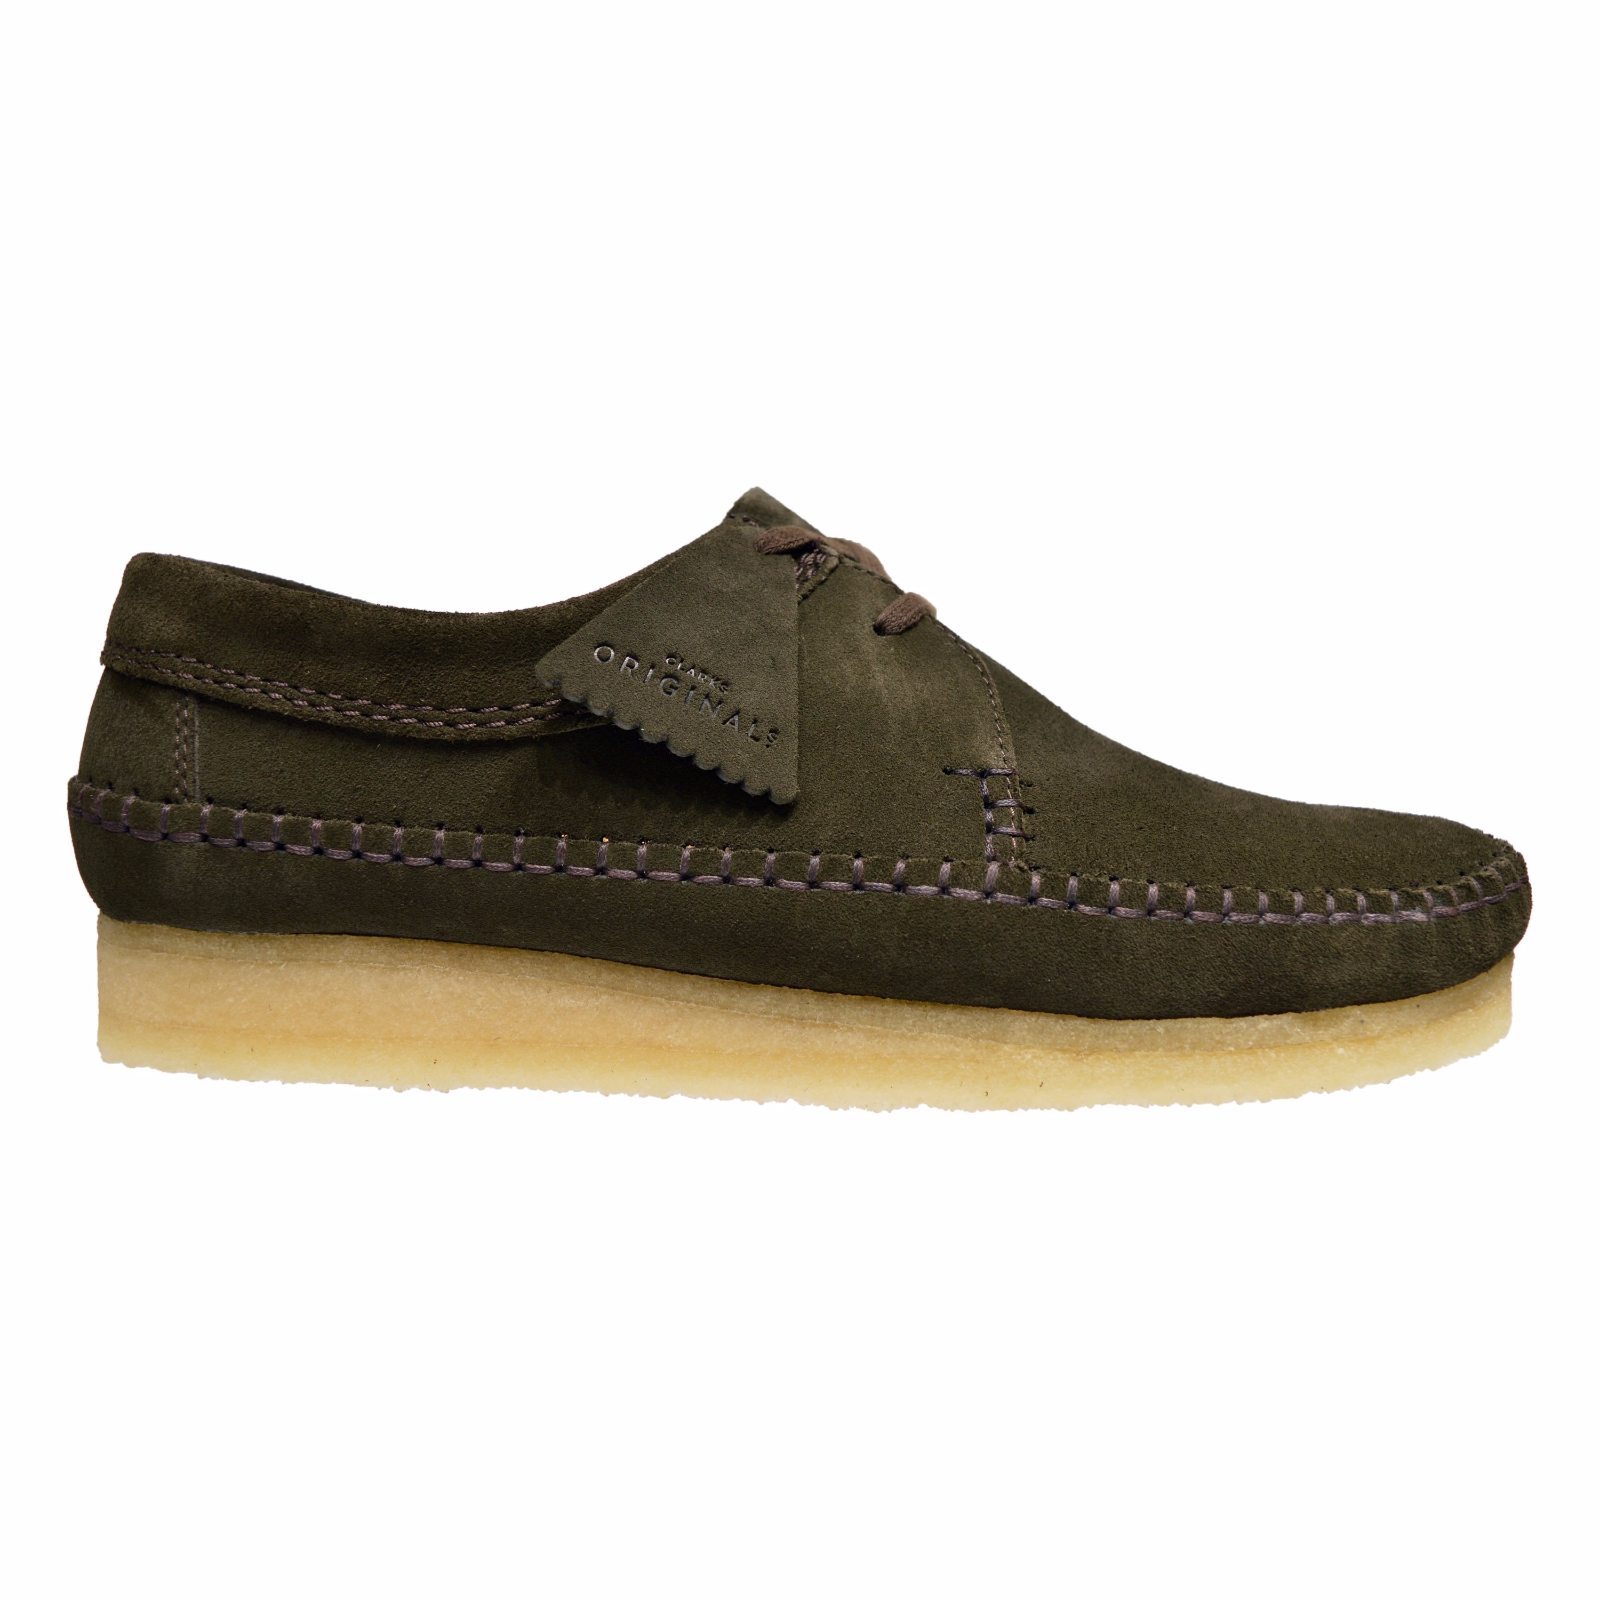 NEW CLARKS OF ENGLAND ORIGINAL EXCLUSIVE PEAT PEAT PEAT OLIVE GREEN SUEDE WEAVER WALLABEE c6aebf